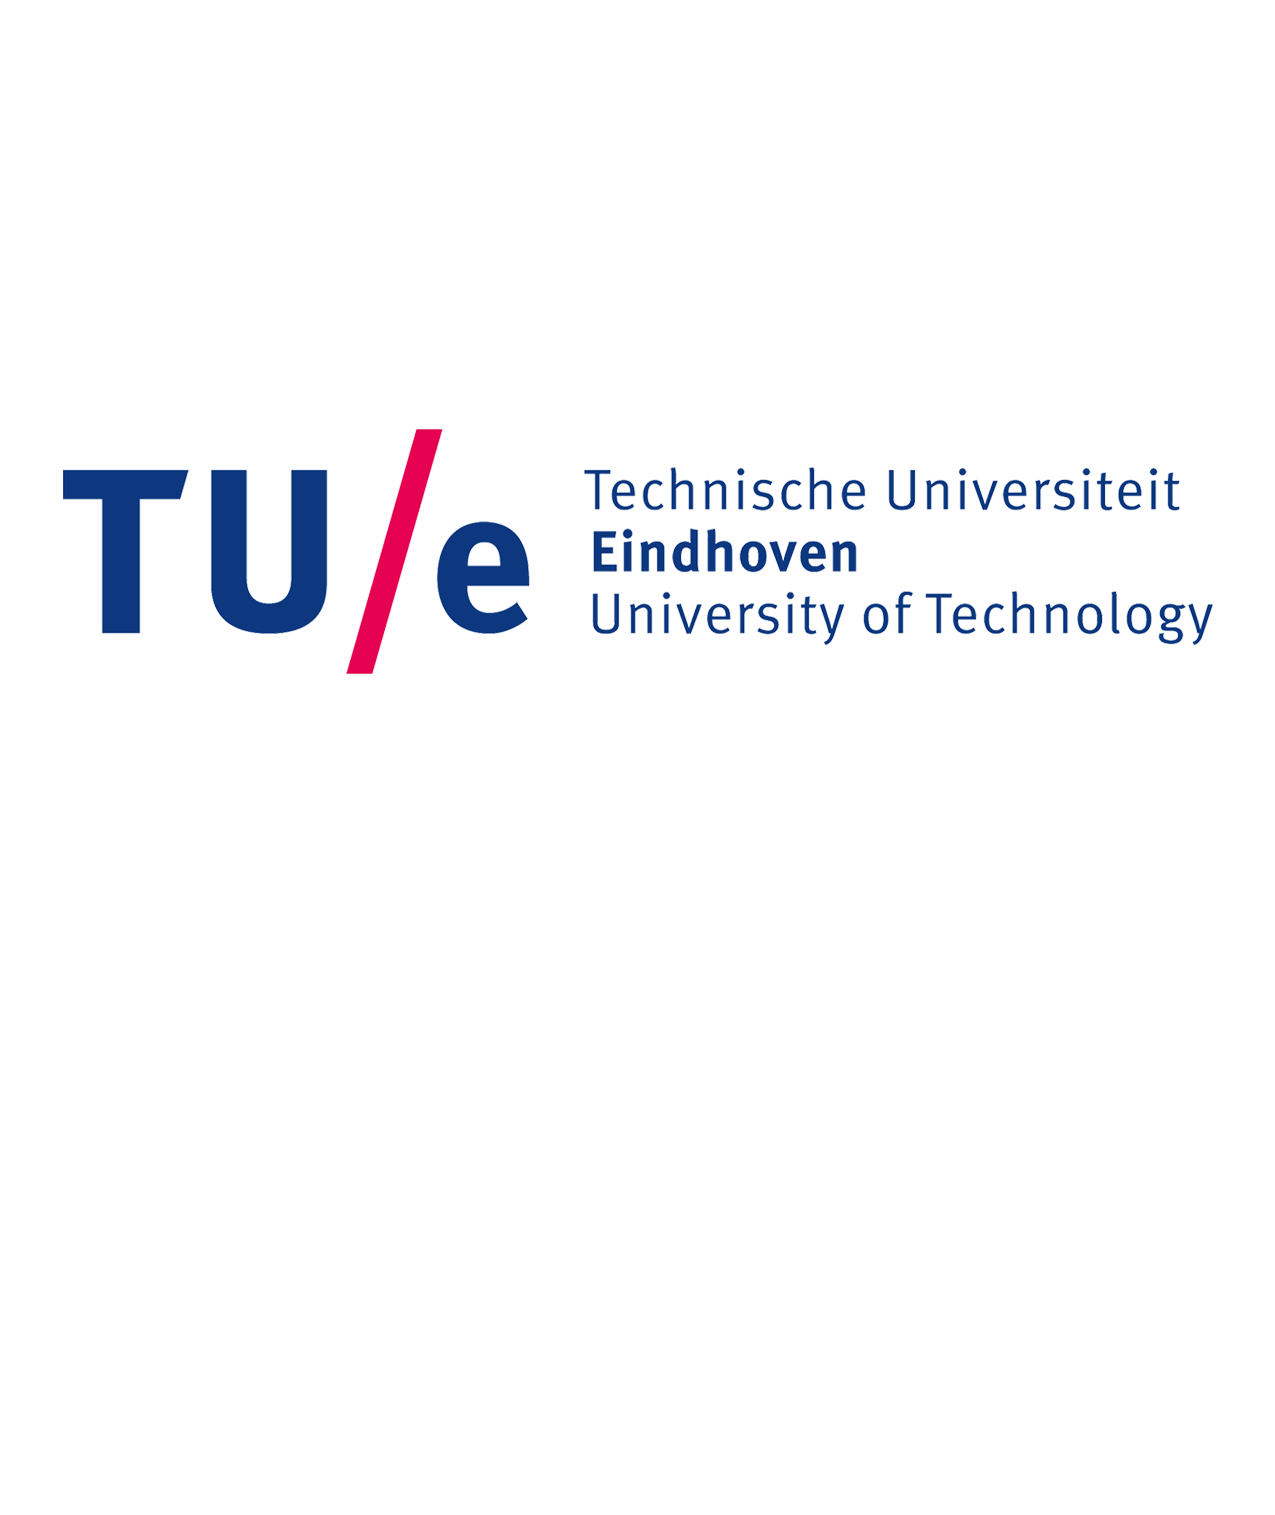 TU Eindhoven - Stichting Materials Technology - DYFP Conference iO & Android app, Website & CMS